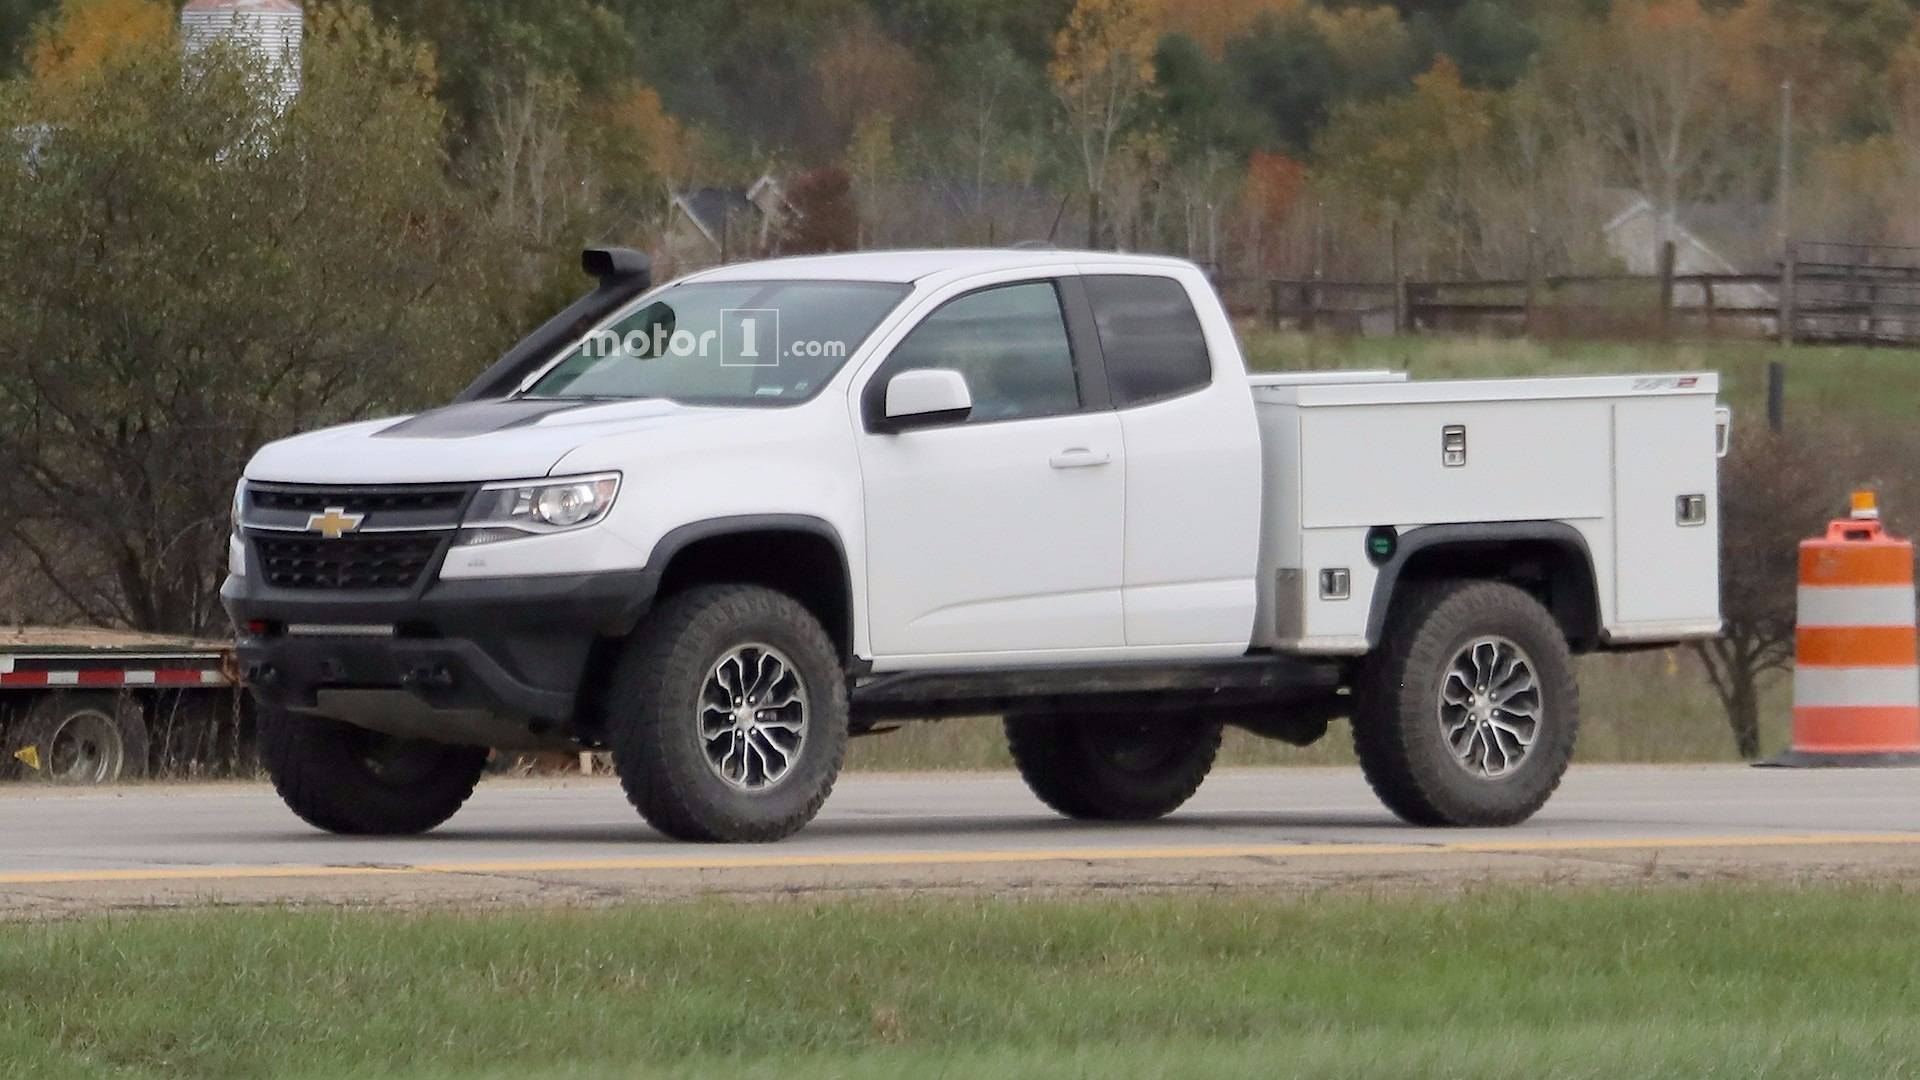 Chevy Work Truck >> Ultimate Work Truck Chevy Testing Zr2 Based Utility Vehicle